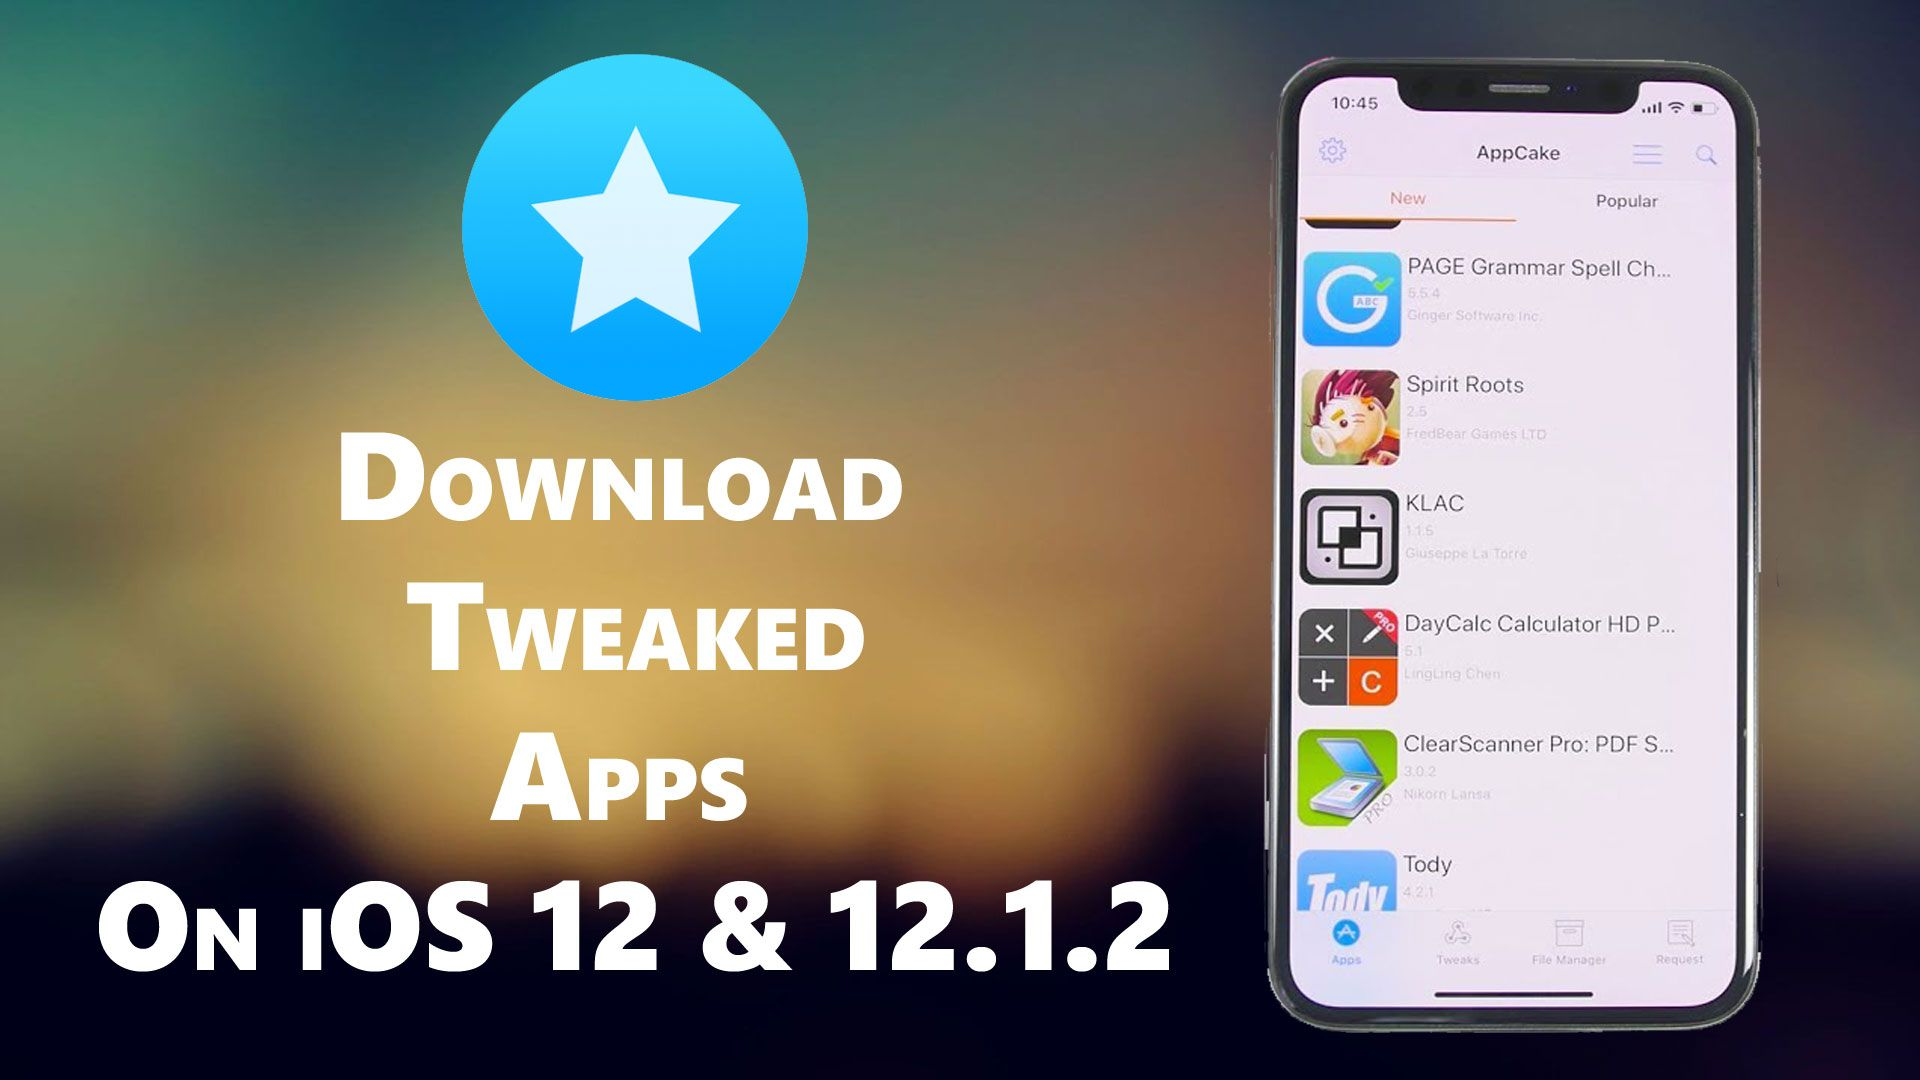 How to download tweaked apps on iOS 12 & 12.1.2 device